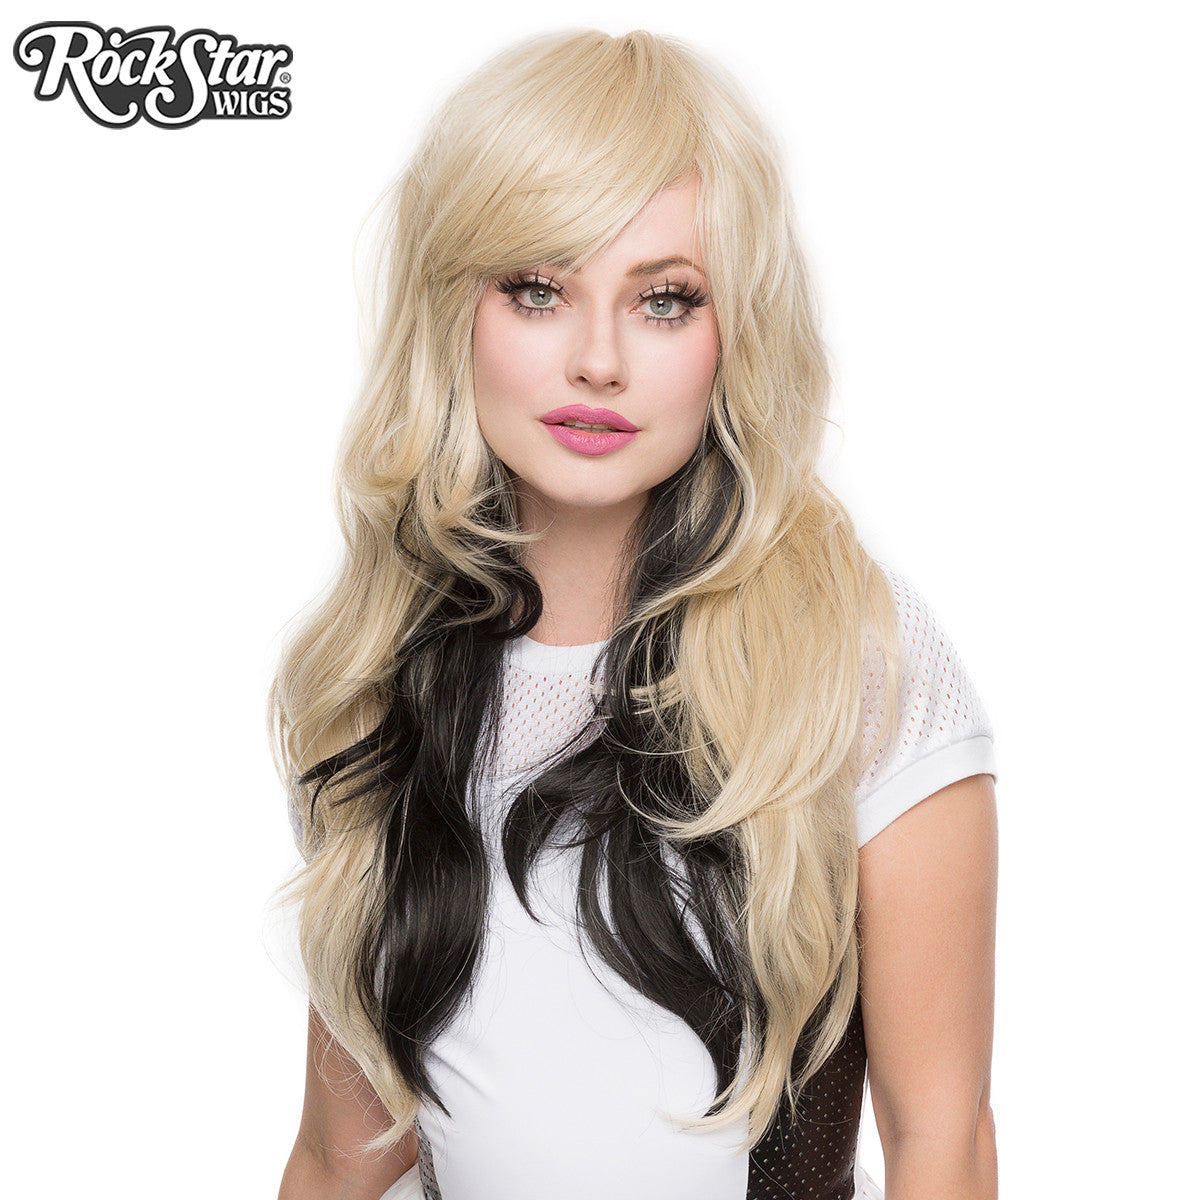 RockStar Wigs® <br> Downtown Girl™ Collection - Blonde & Black -00364